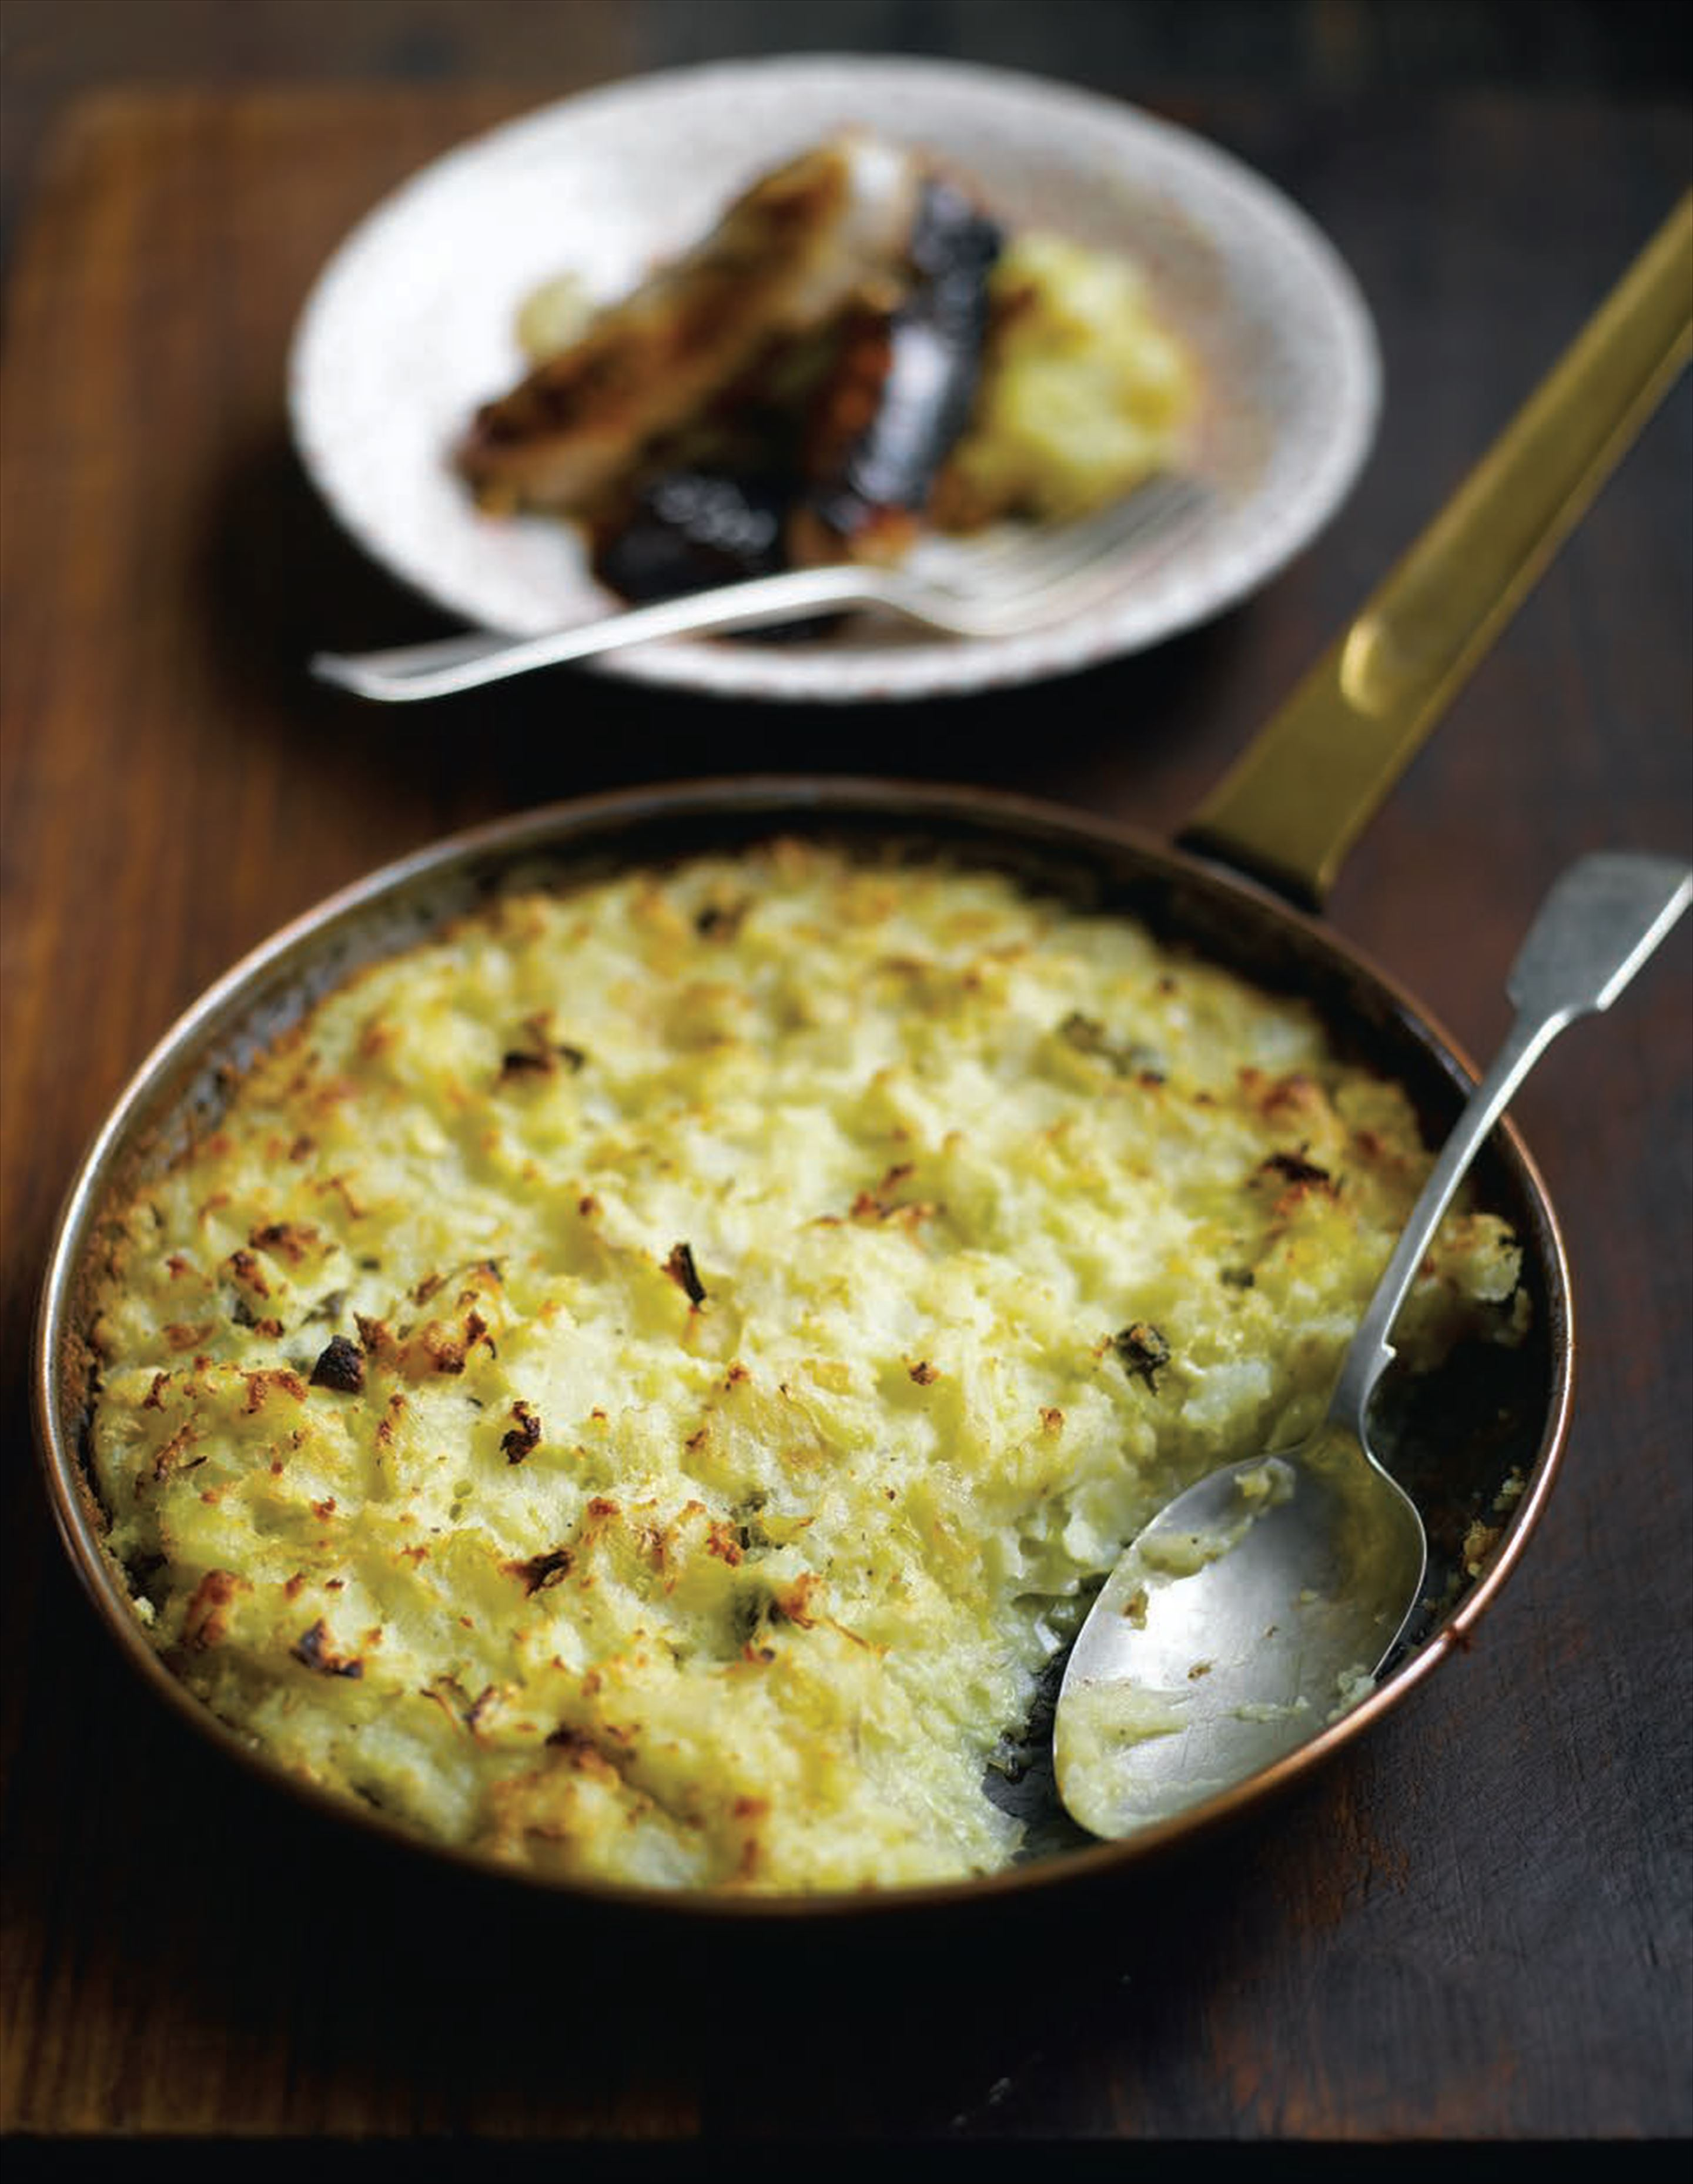 Brussels sprout gratinée with Stilton crust